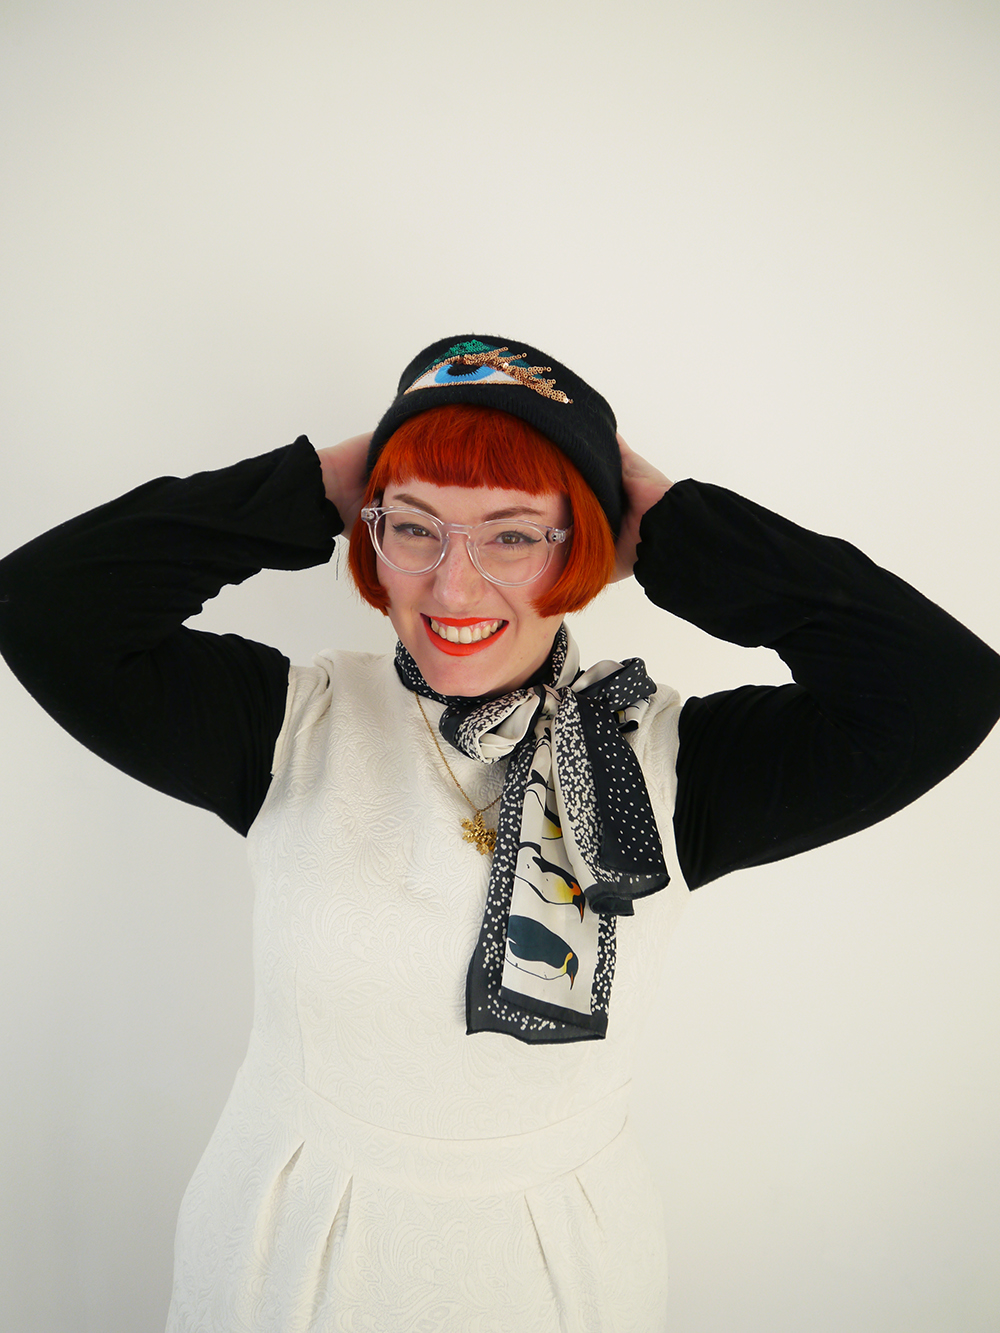 Unlikely Style Icon, Chritsmas Style Icon, Christmas style, snowman style, cute snowman costume, festive style, winter style, red headed blogger, red hair, ginger, Iolla glasses, #seewithiolla, Bershka Eye hat, sequin hat, fun winter hat, Karen Mabon, KAren Mabon scarf, Penguin scarf, Bonnie Bling, snowflake necklace, Bonnie Bling acrylic jewellery, Bonnie Bling necklace, winter necklace, gold snowflake necklace, white dress, short white dress, layering, layered style, Ted & Muffy, ted and muffy, ted and muffy boots, Victorian style ankle boots, witchy style boots, black ankle boots, Scottish blogger